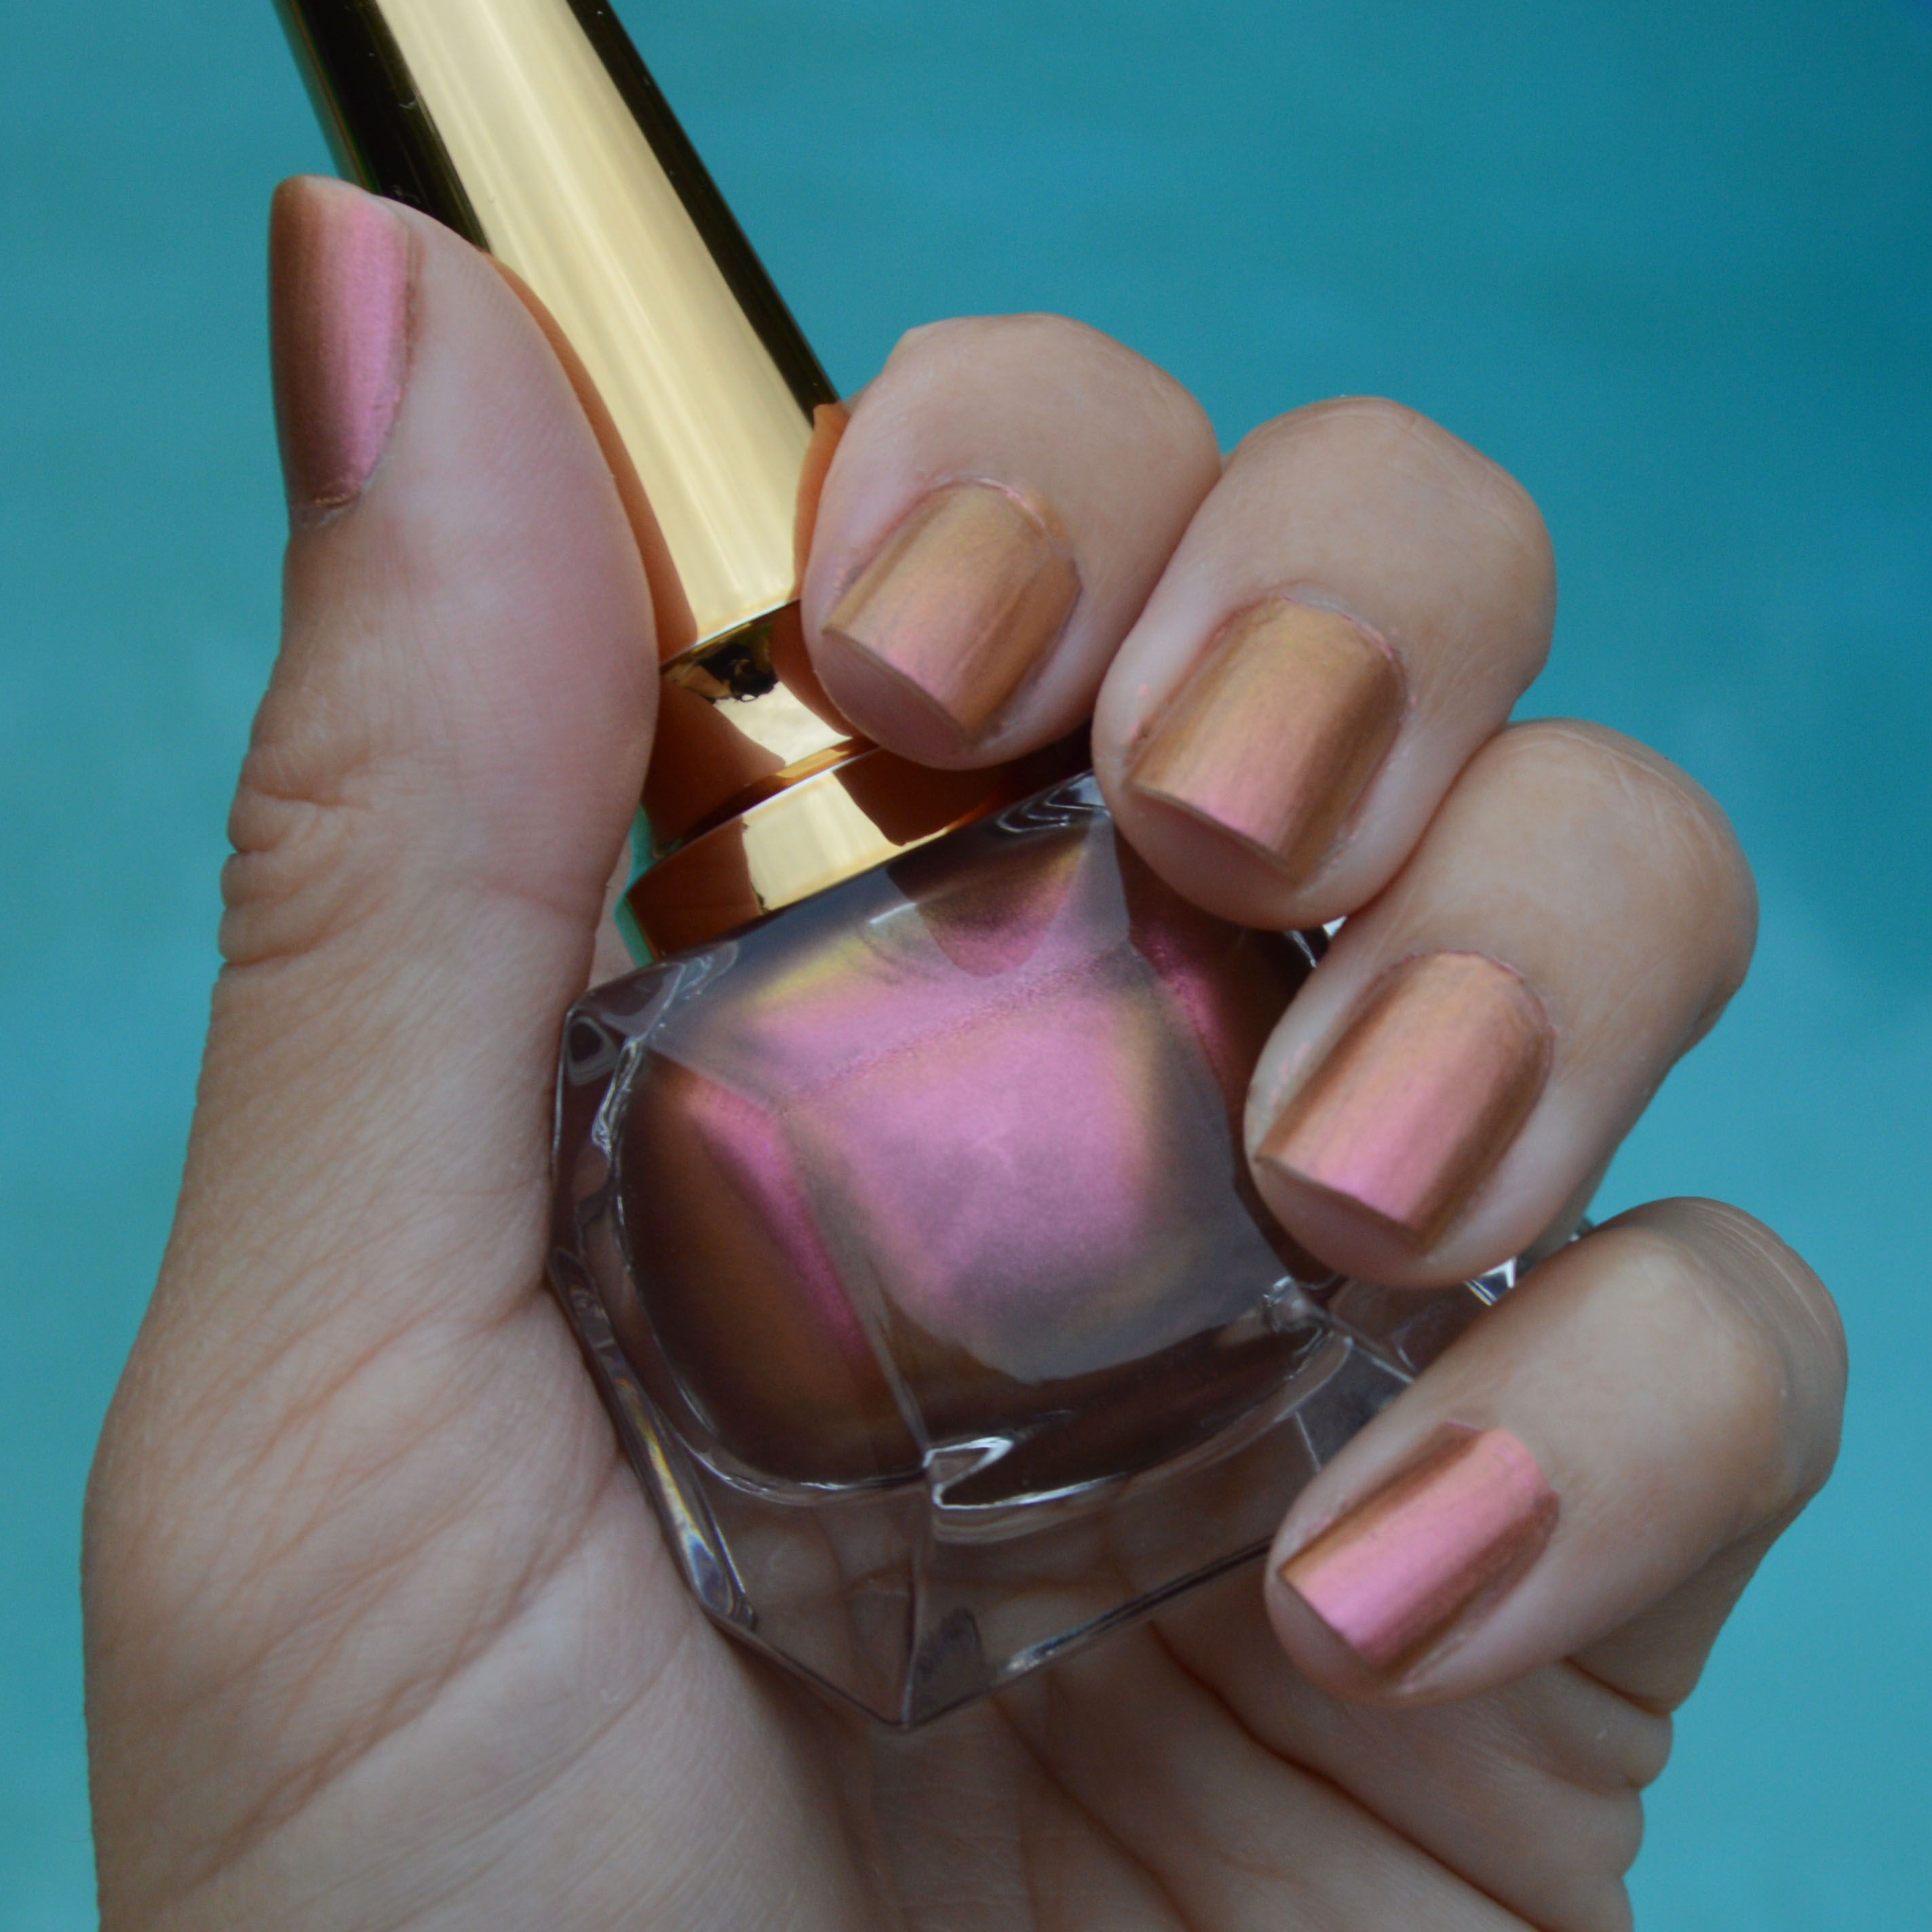 98a29d4744ad Christian Louboutin Nude Pink Gold nail polish from the Scarabee ...